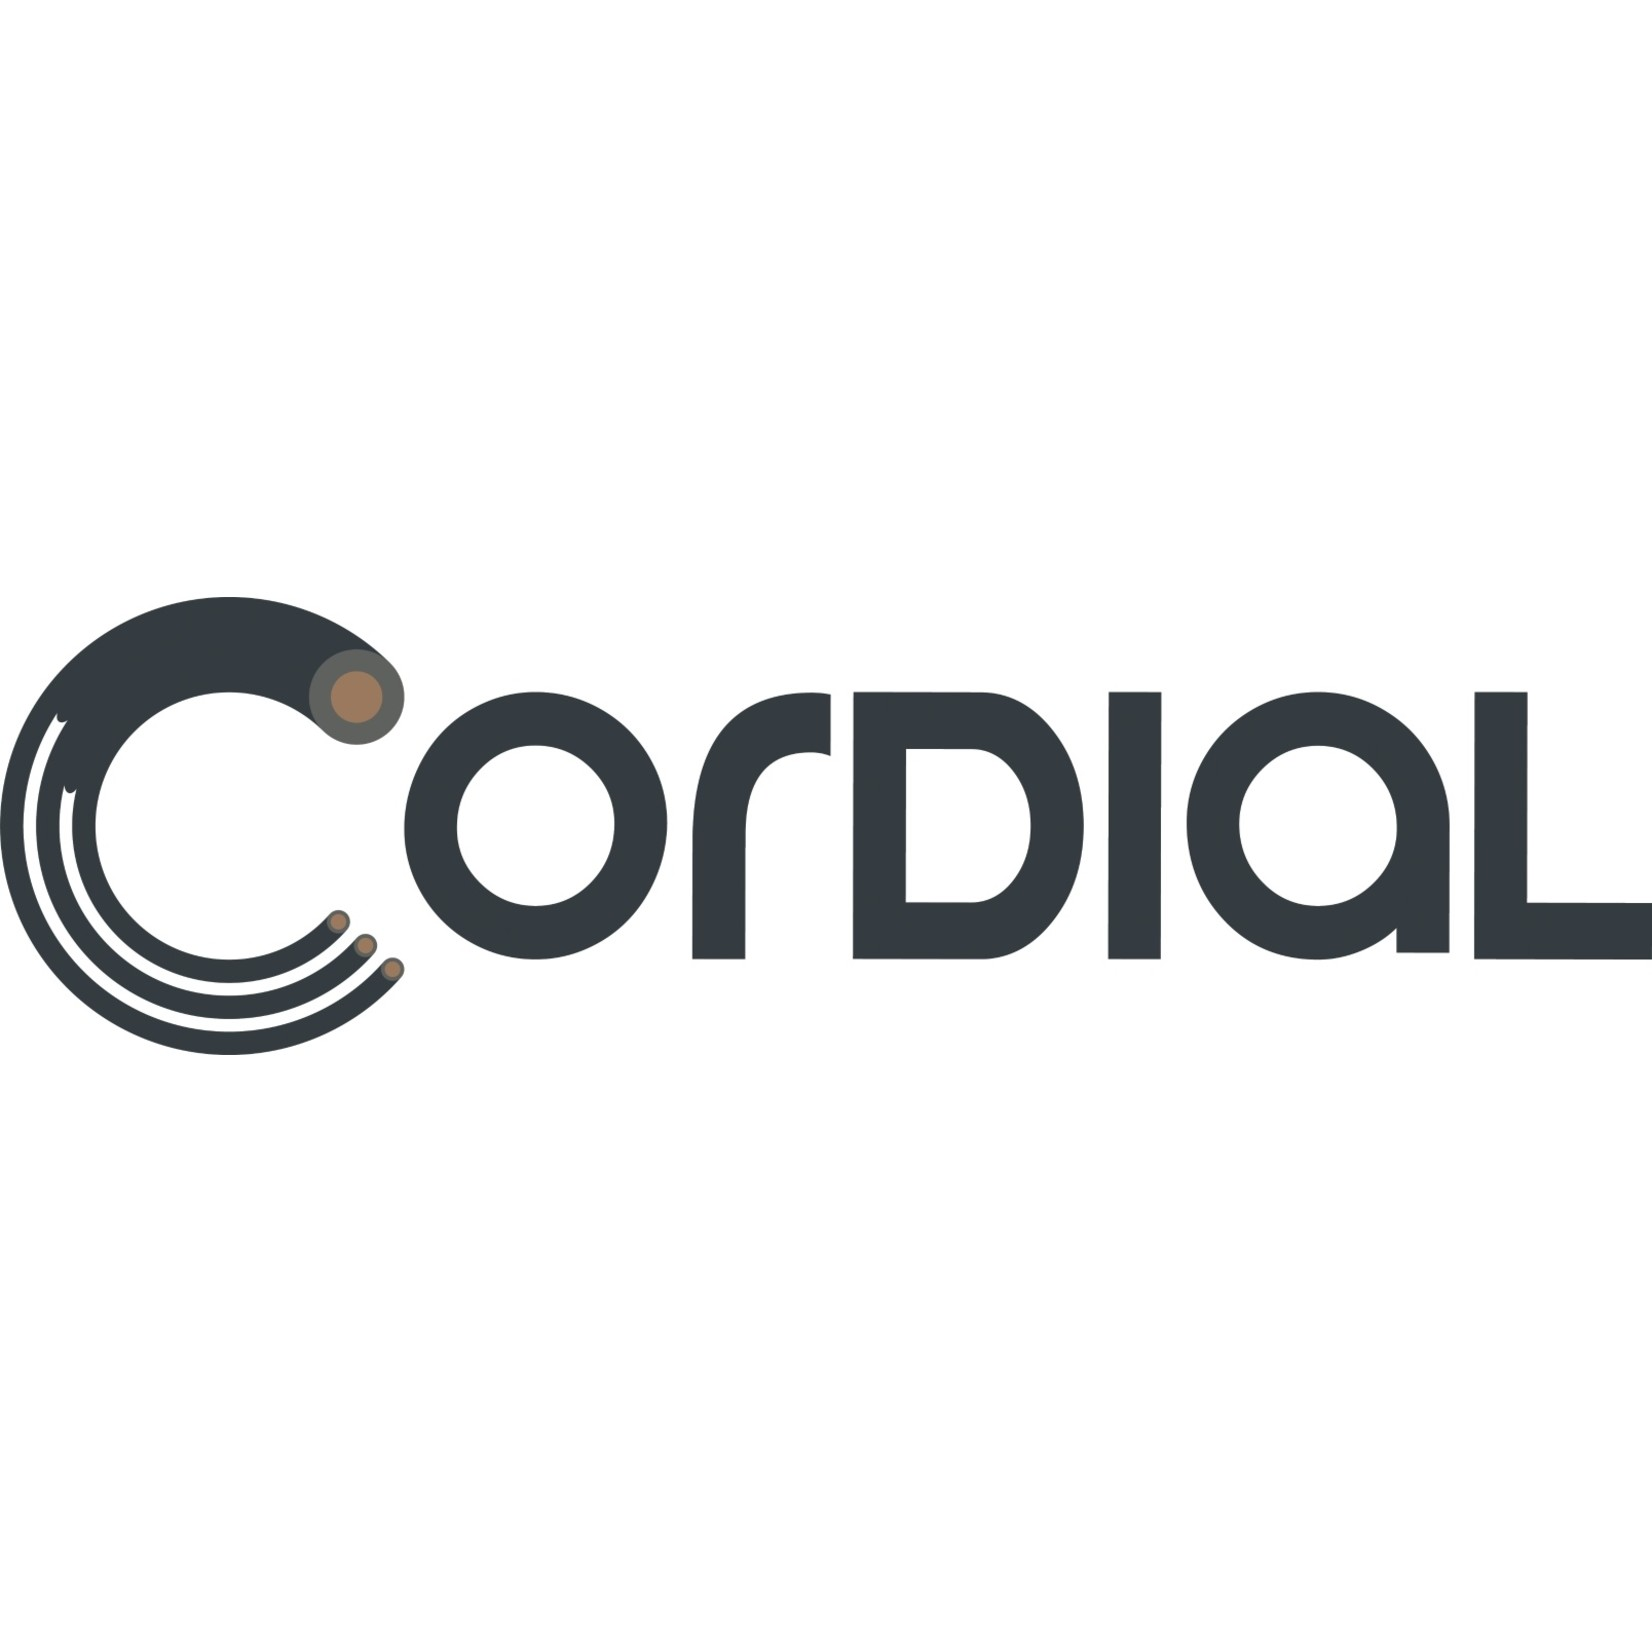 Cordial Cables Cordial Cables Premium High-Copper Microphone Cable with Road Wrap, Peak Series - XLR to XLR Connectors, Enhanced Road Toughness, 33-Foot Cable